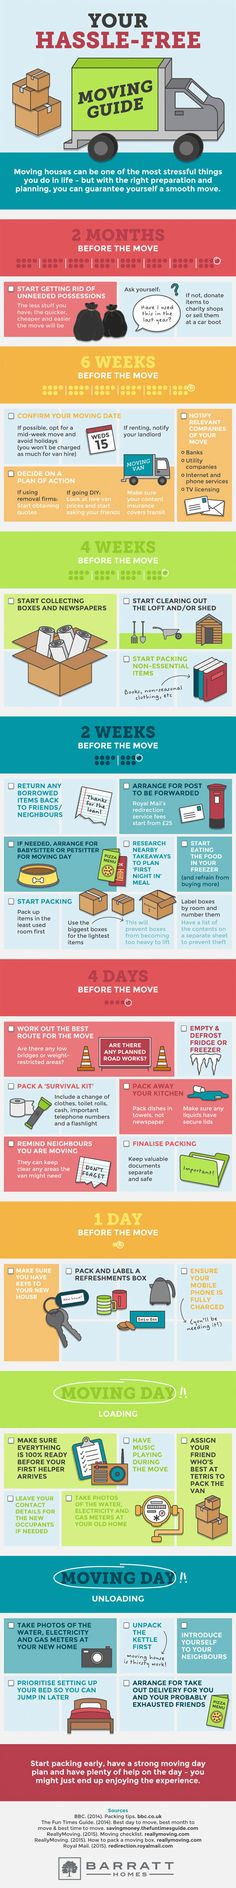 Your Guide to Stress-free Moving Not sure how to get your stuff together in a timely manner? Let this moving guide map it out for you. Moving House Tips, Moving Home, Moving Day, Moving Tips, Moving Photos, Moving Hacks, Packing To Move, Packing Tips, Travel Packing